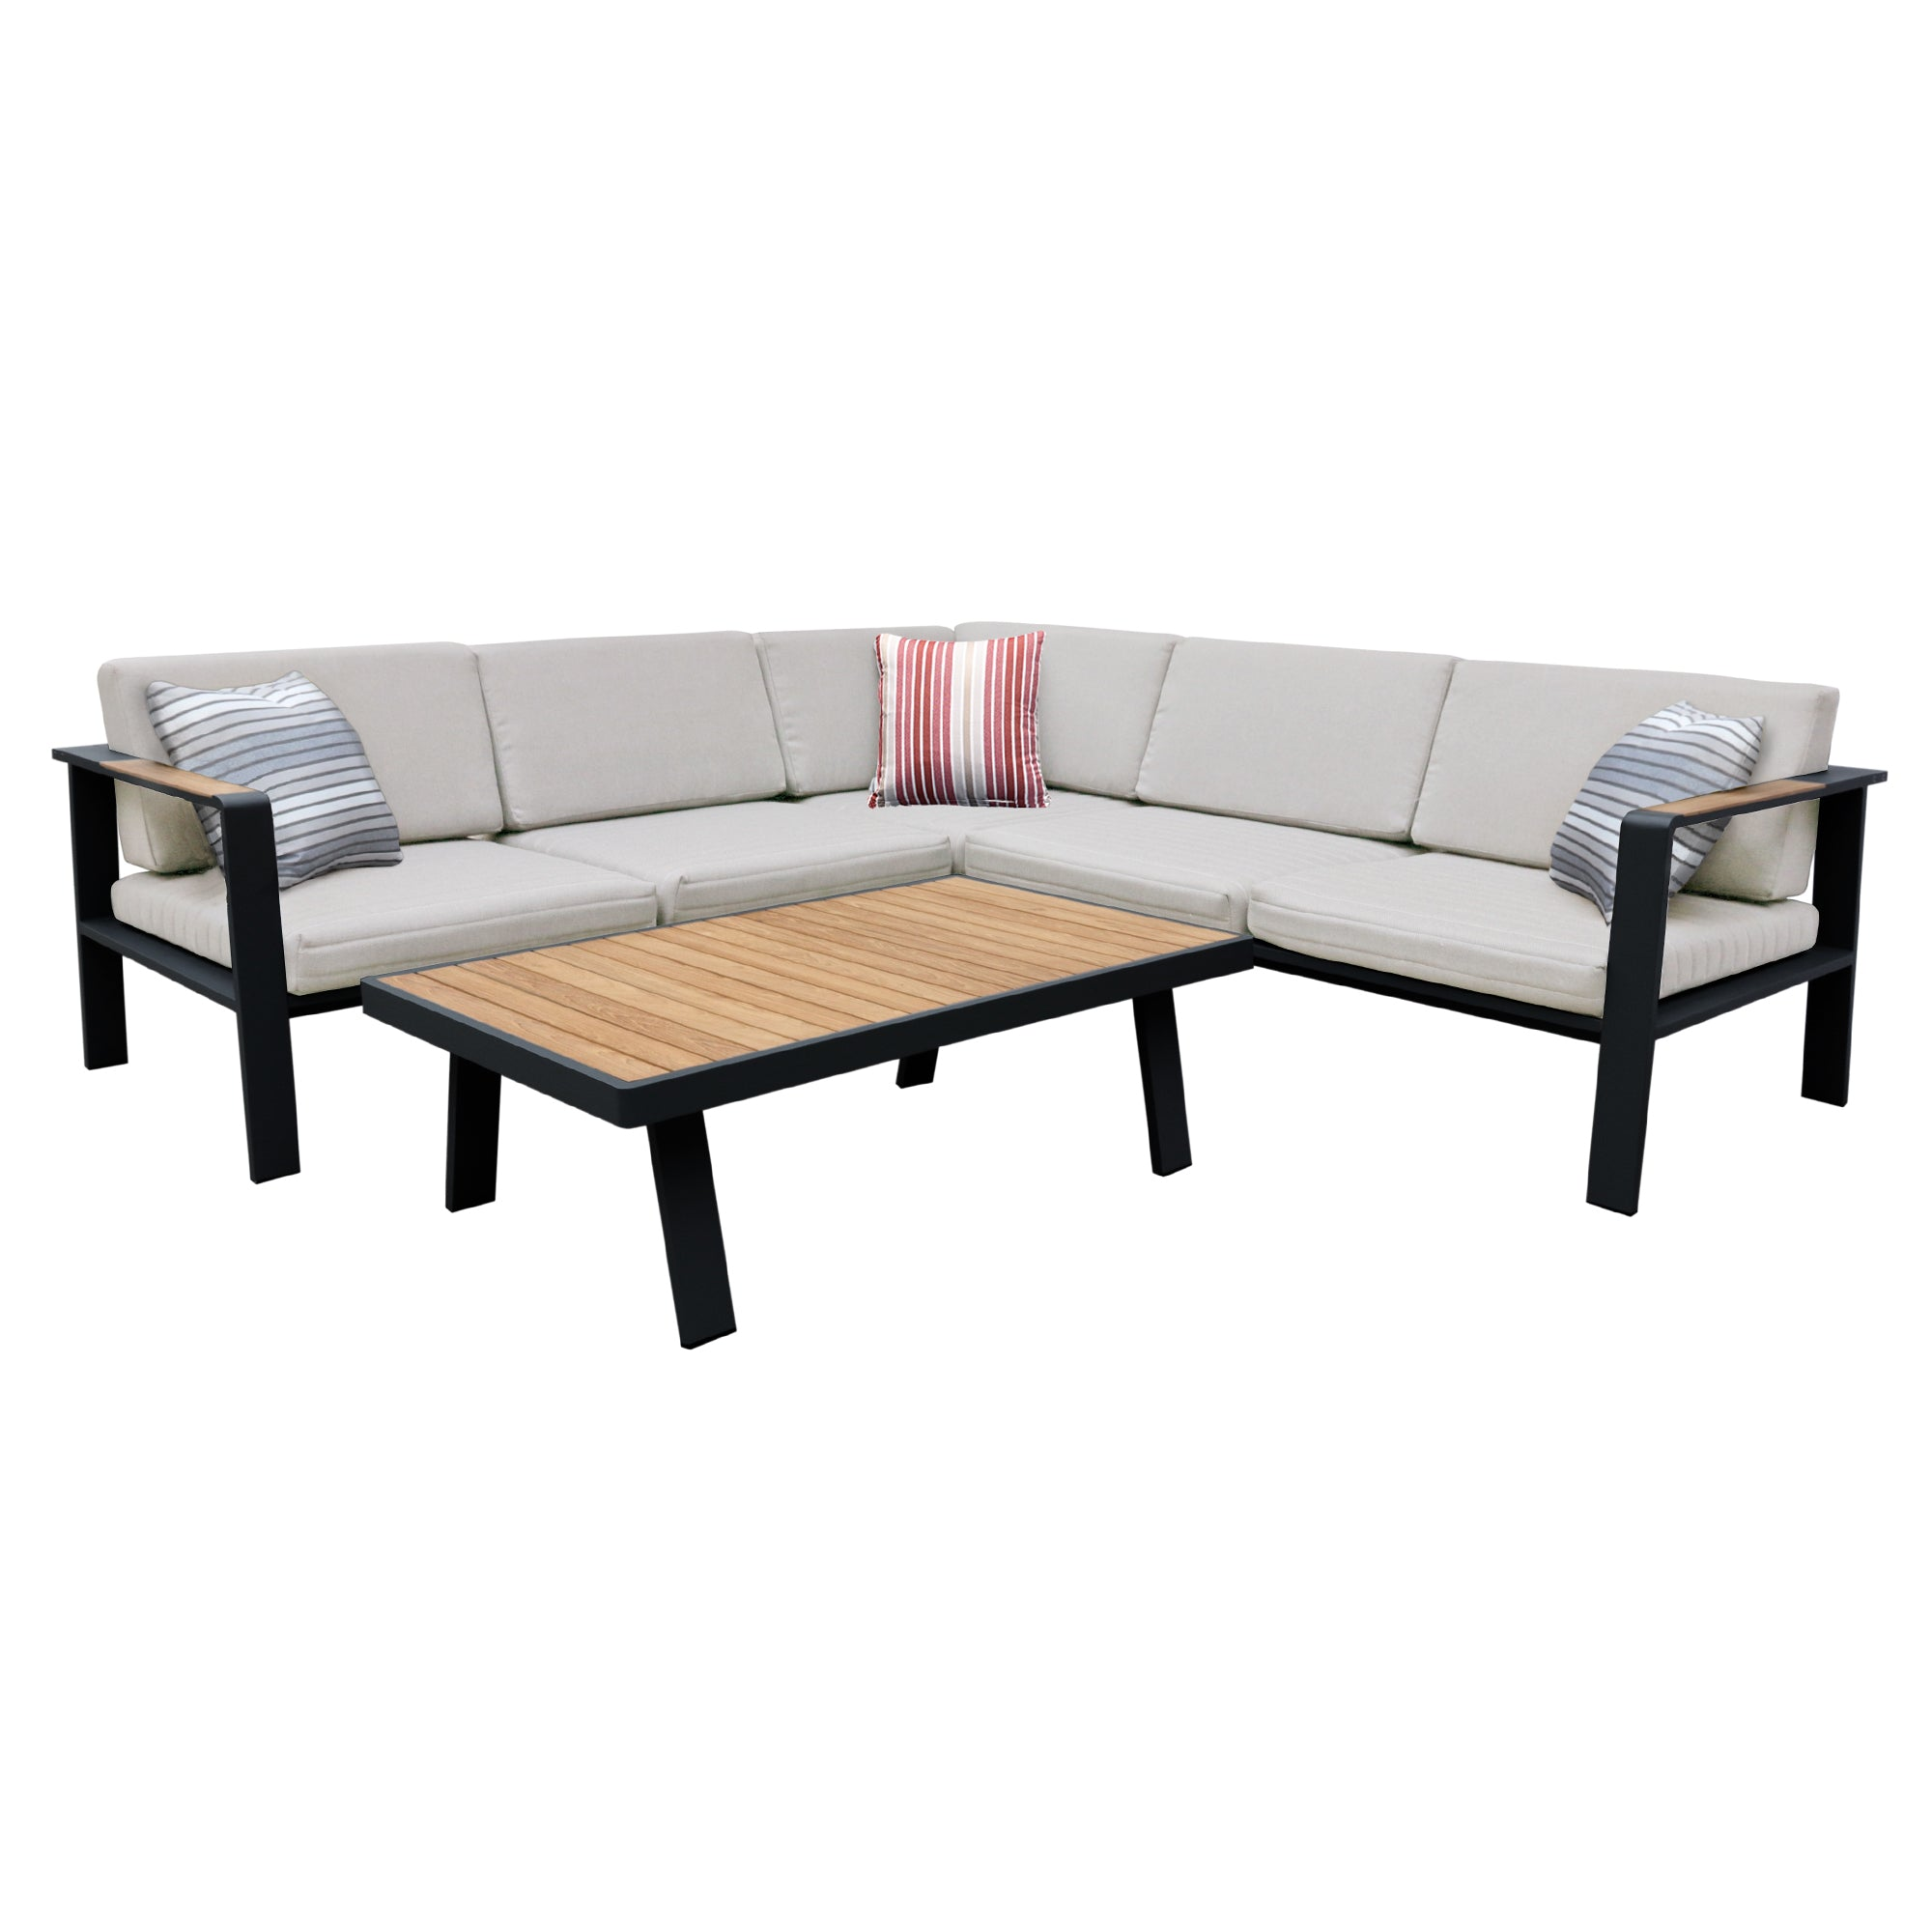 Armen Living Outdoor Patio Sectional Set Gray Nofi